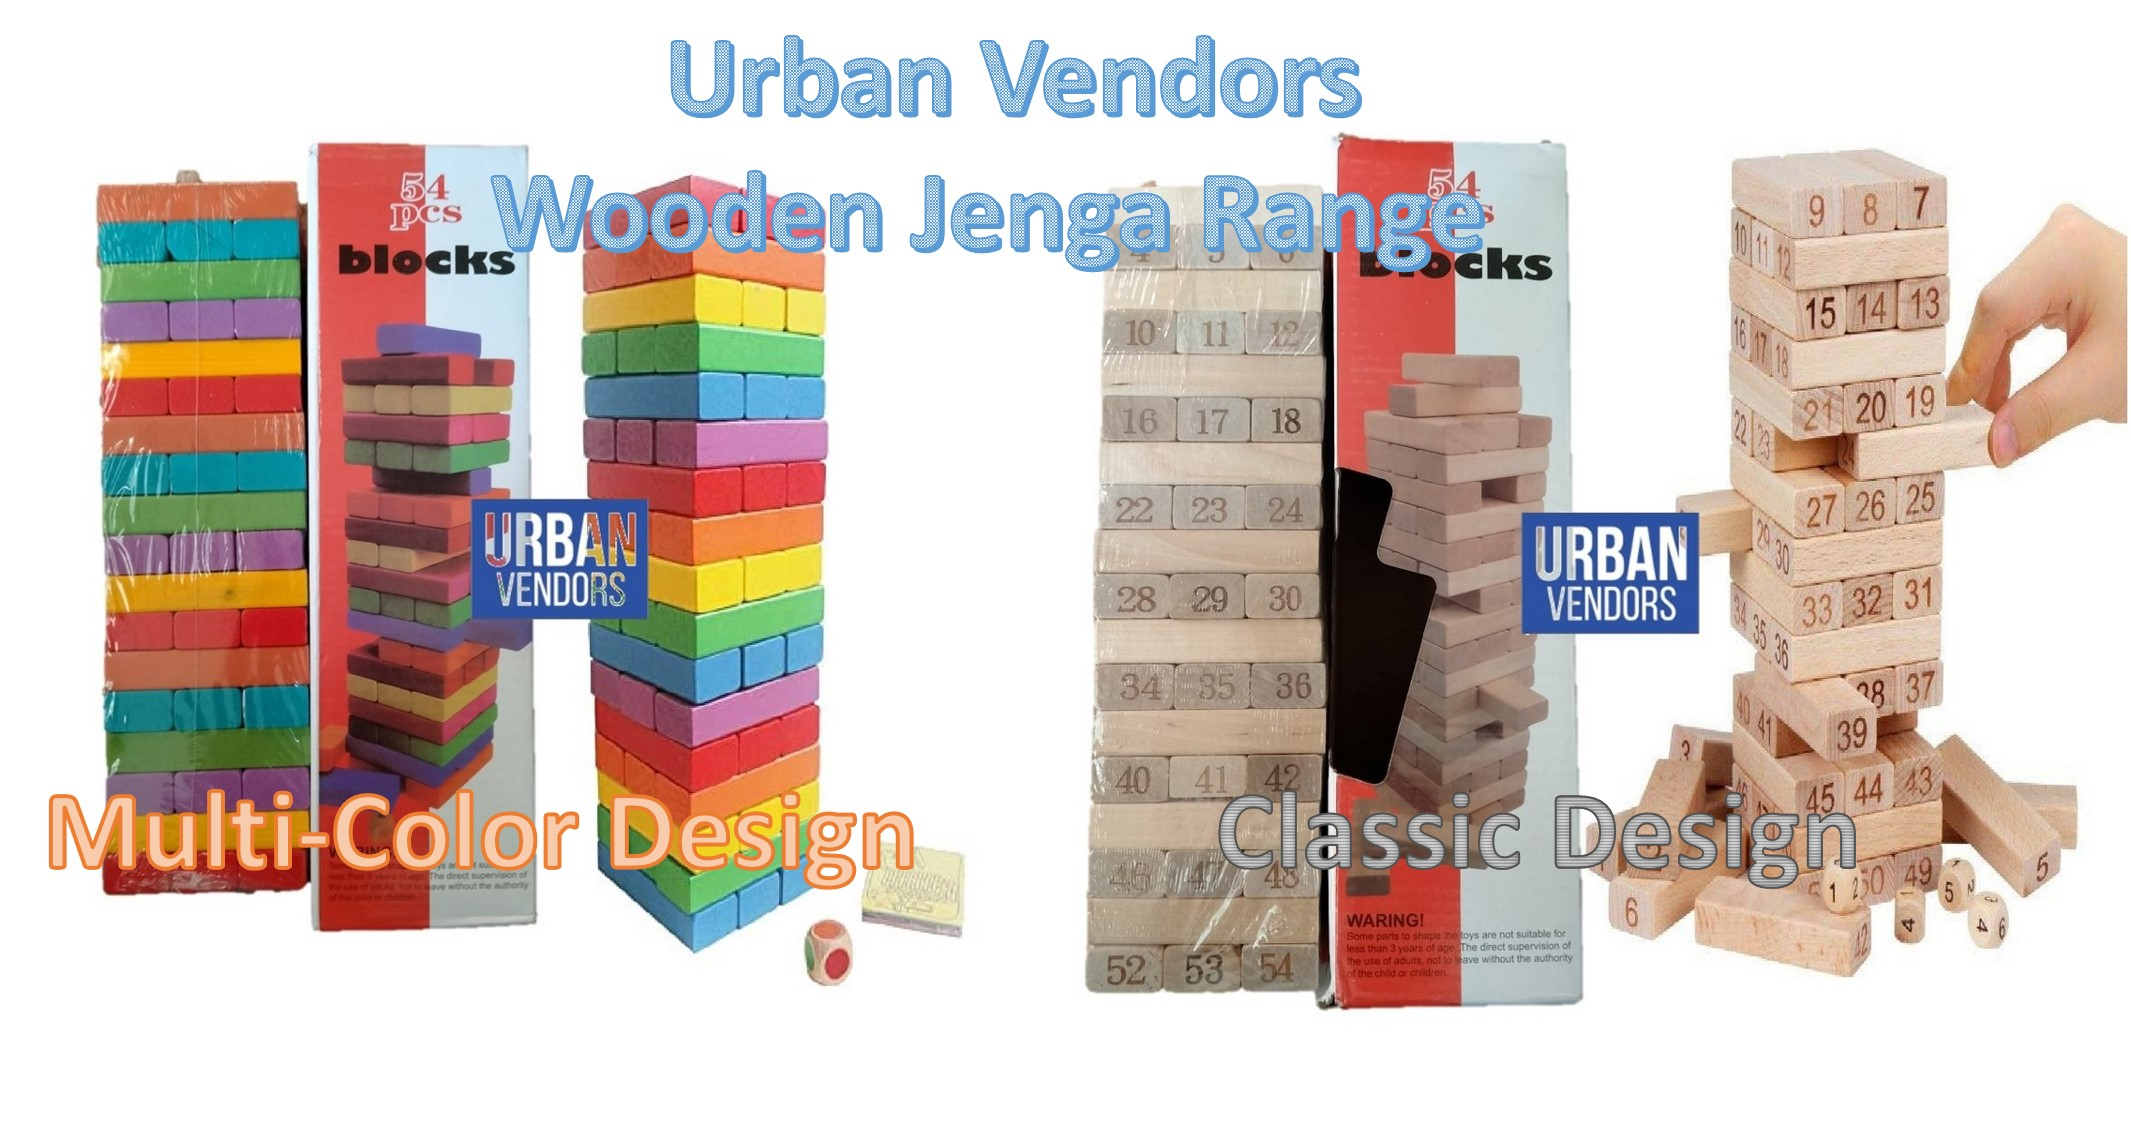 Jenga Wooden Kids Game Large Size 54 Blocks with 2 Dice Stacking Tumbling Tower Multicolor